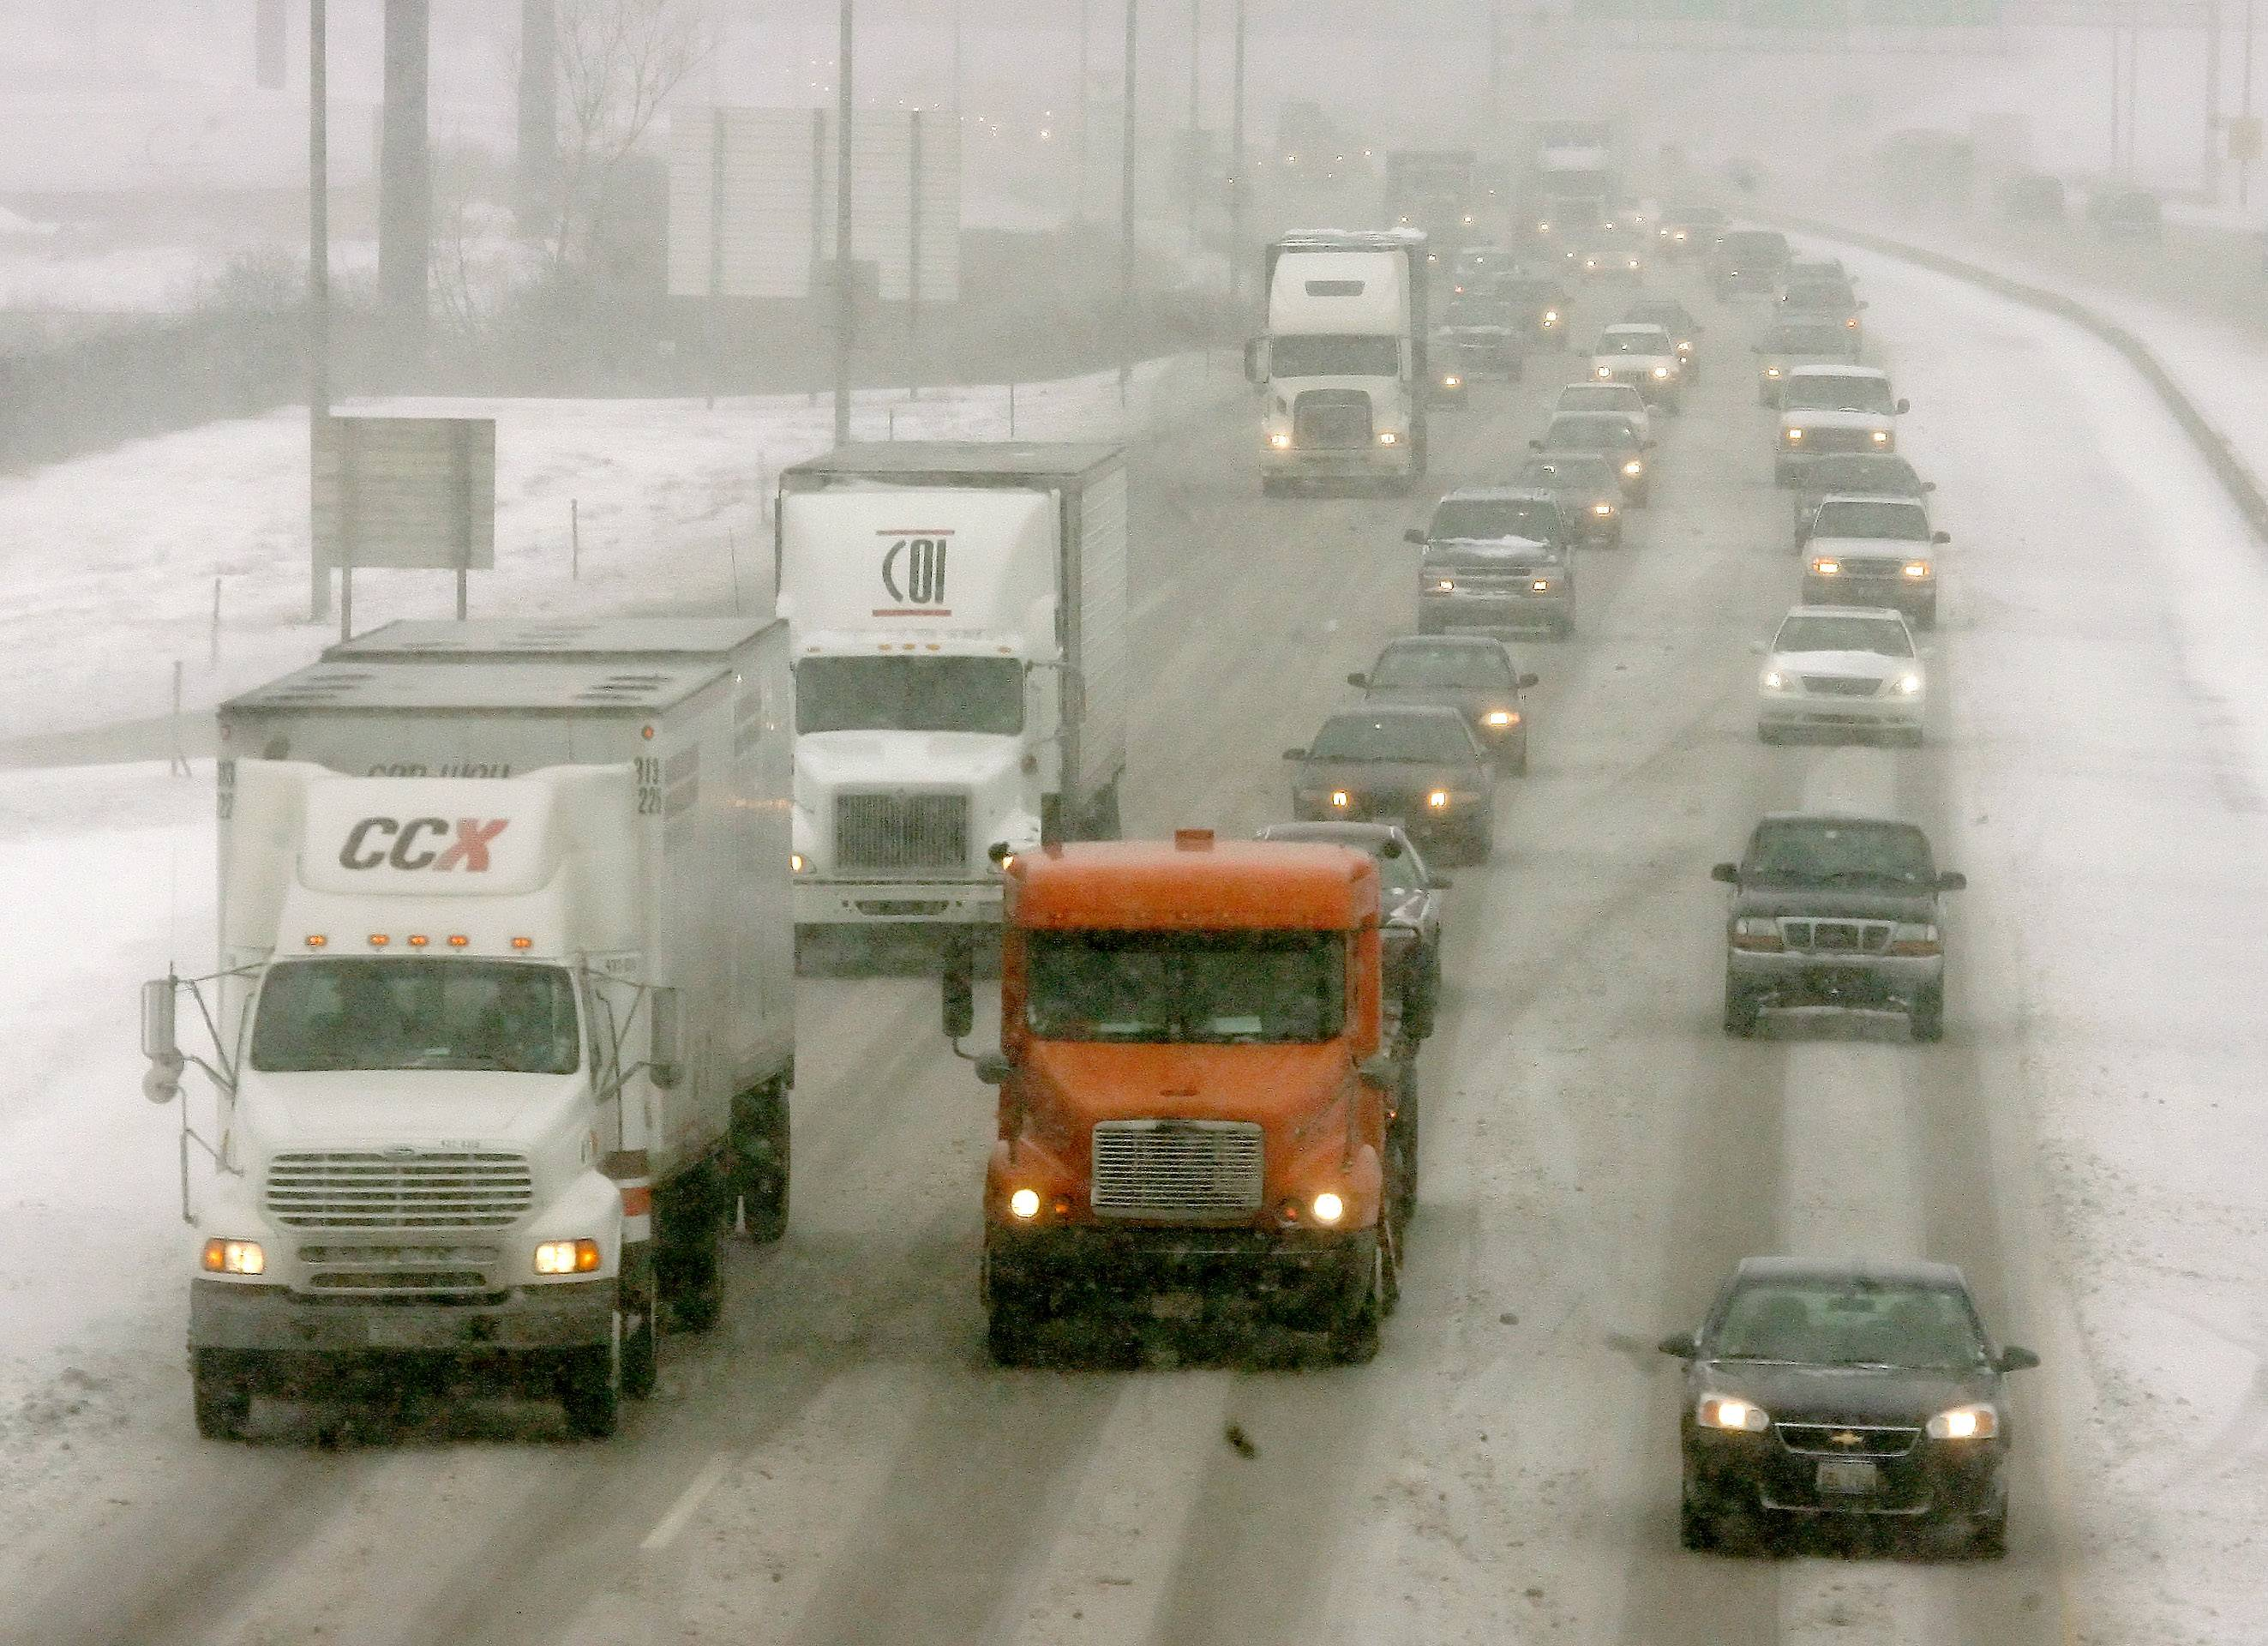 Snow could affect your commute on Friday morning.